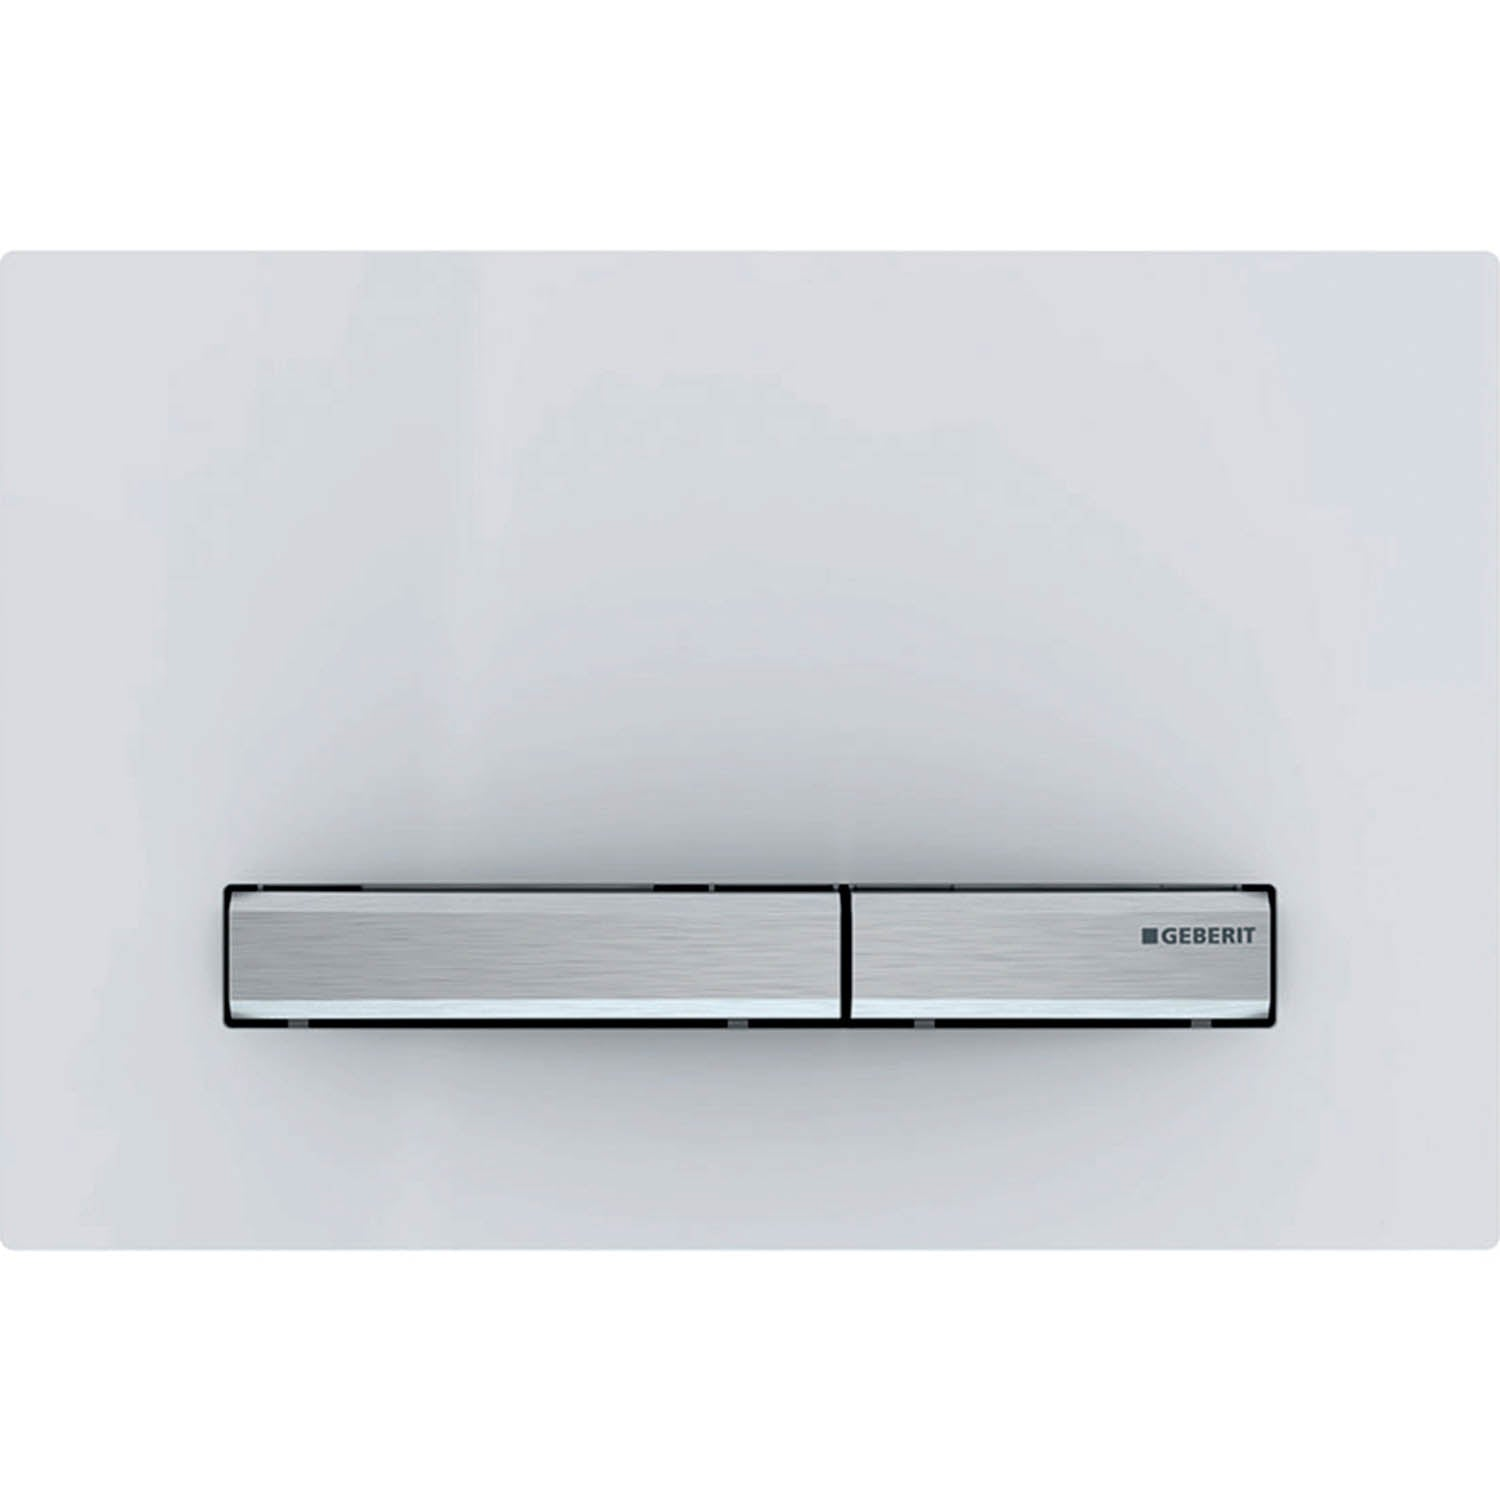 Sigma Rectangular Dual Action Flush Plate with a white finish on a white background